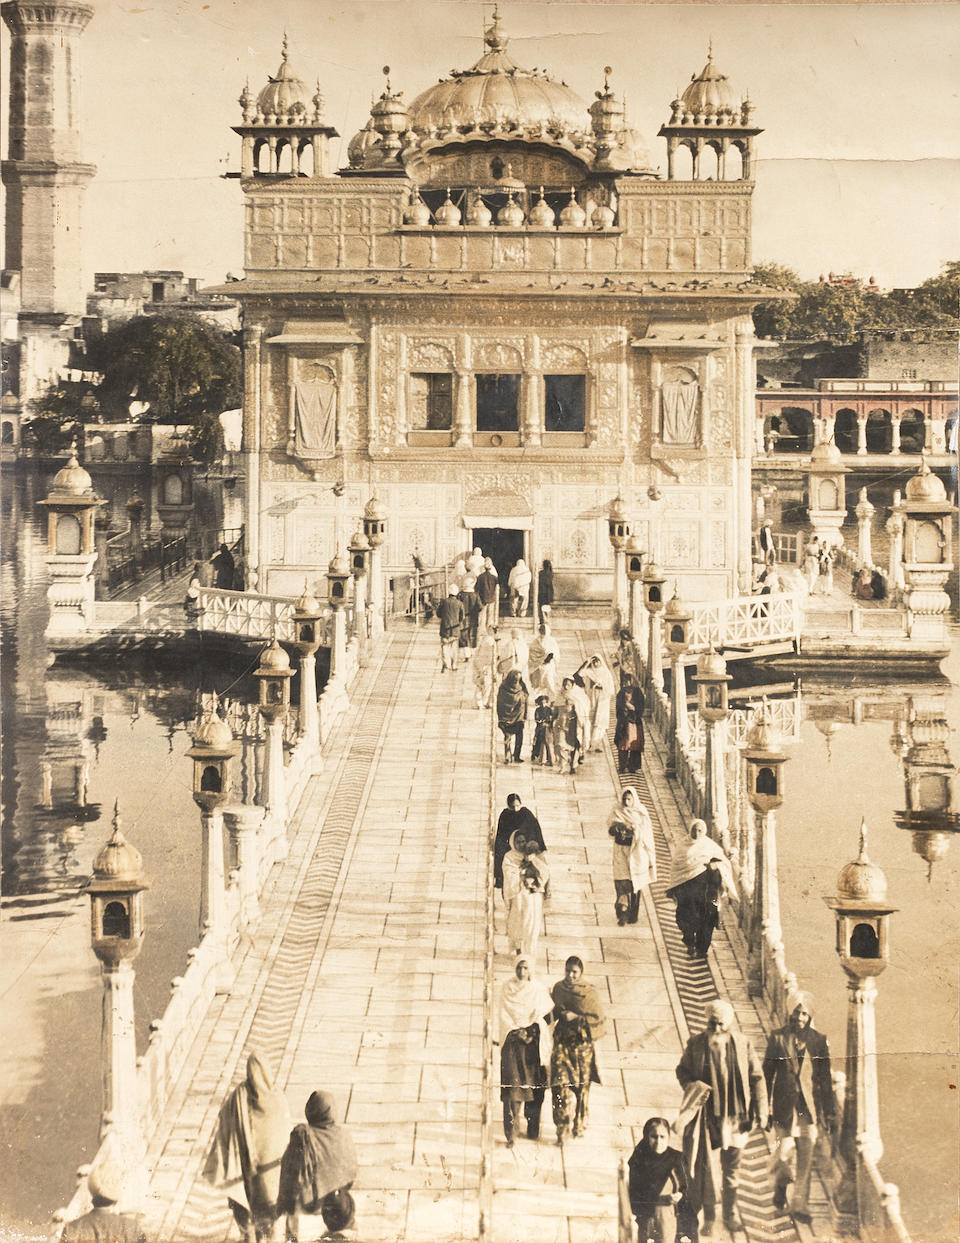 The Golden Temple at Amritsar, viewed from the end of the causeway early 20th Century